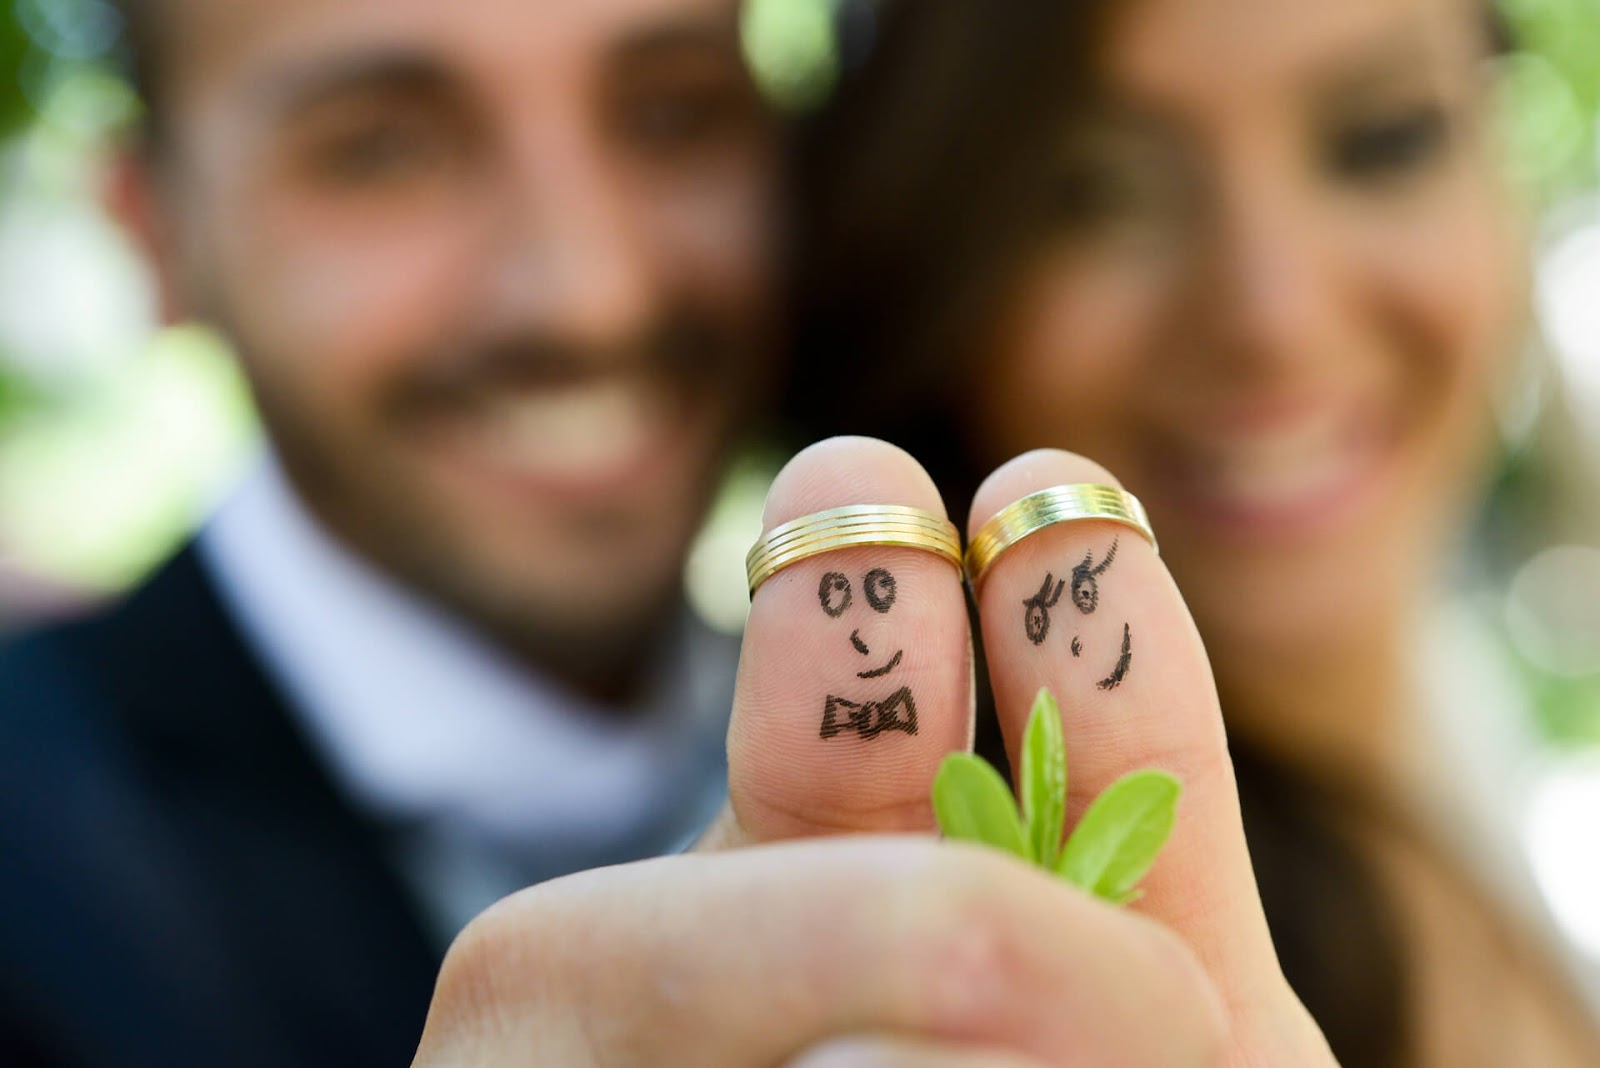 Bride and groom with rings on their thumbs & a face drawn on